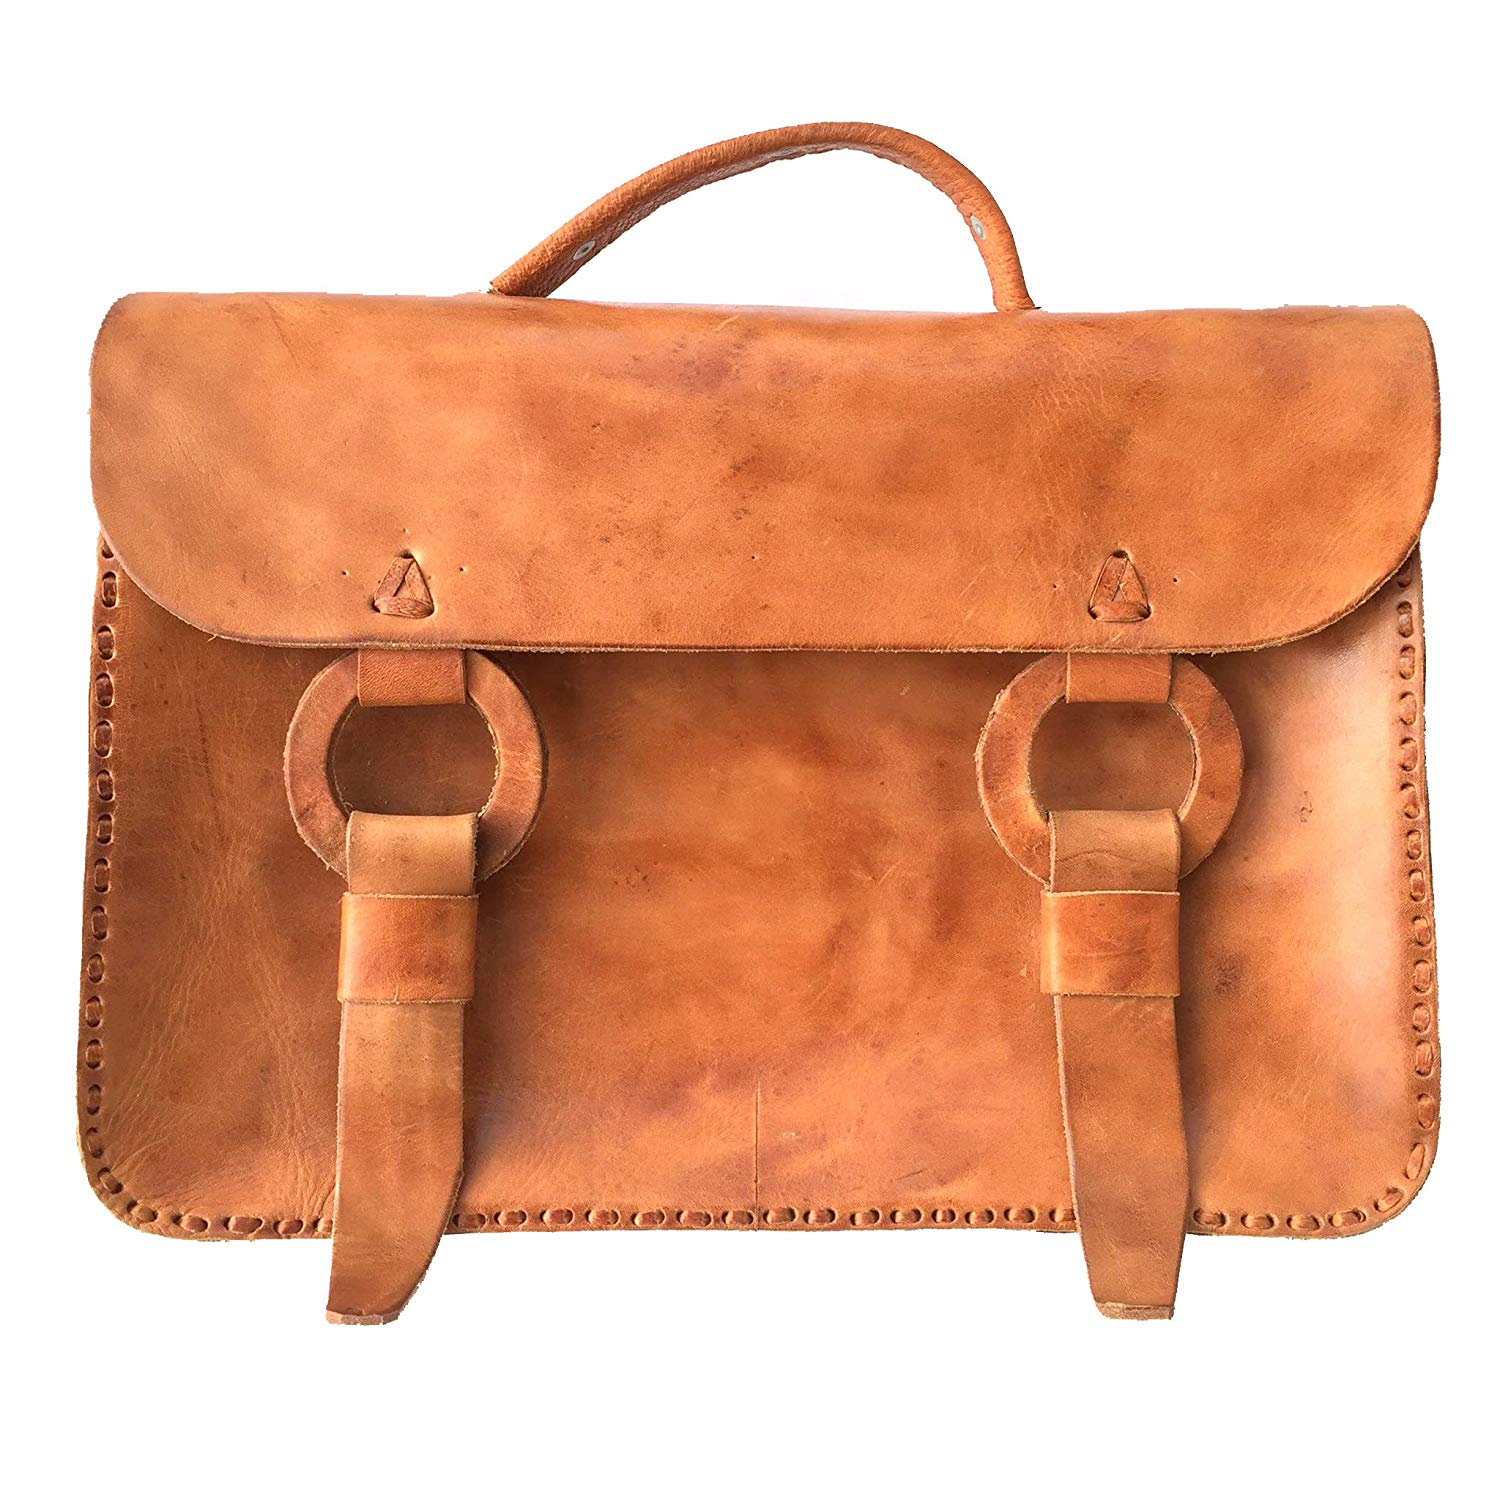 21a75612d900 Cheap Leather Bags Handmade, find Leather Bags Handmade deals on ...